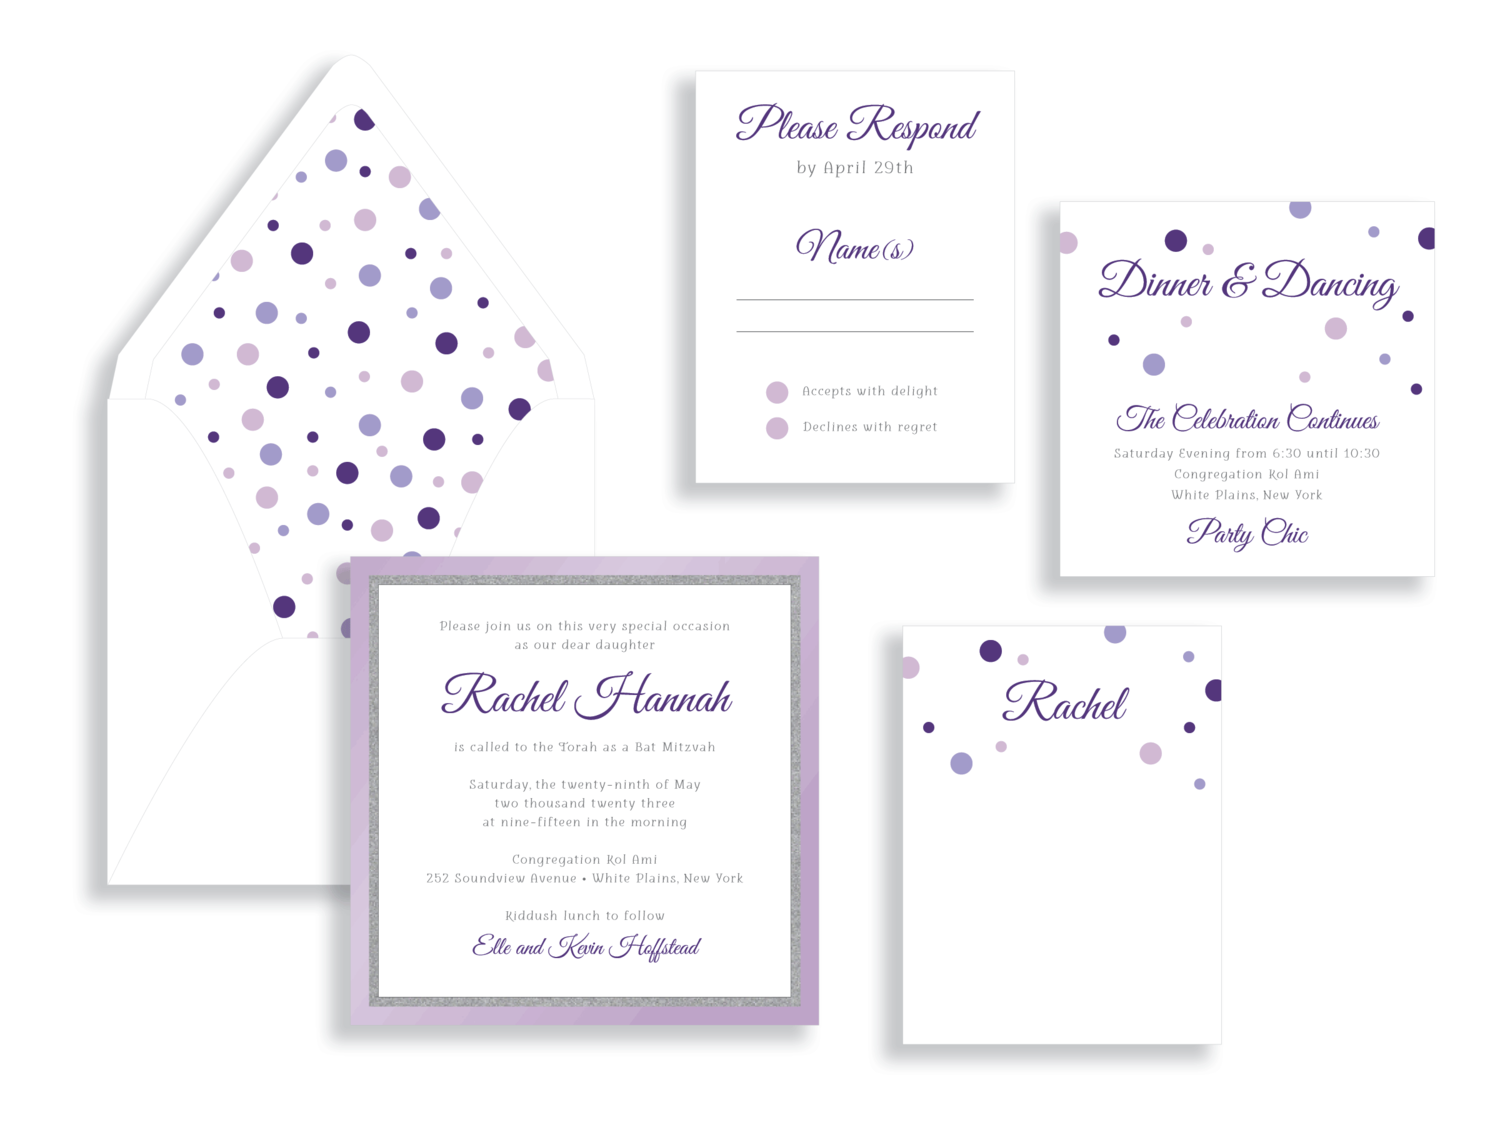 Rachel purple and silver glitter polka dot bat mitzvah invitation in Fairfax Virginia from Staccato with personalized service, great selection!